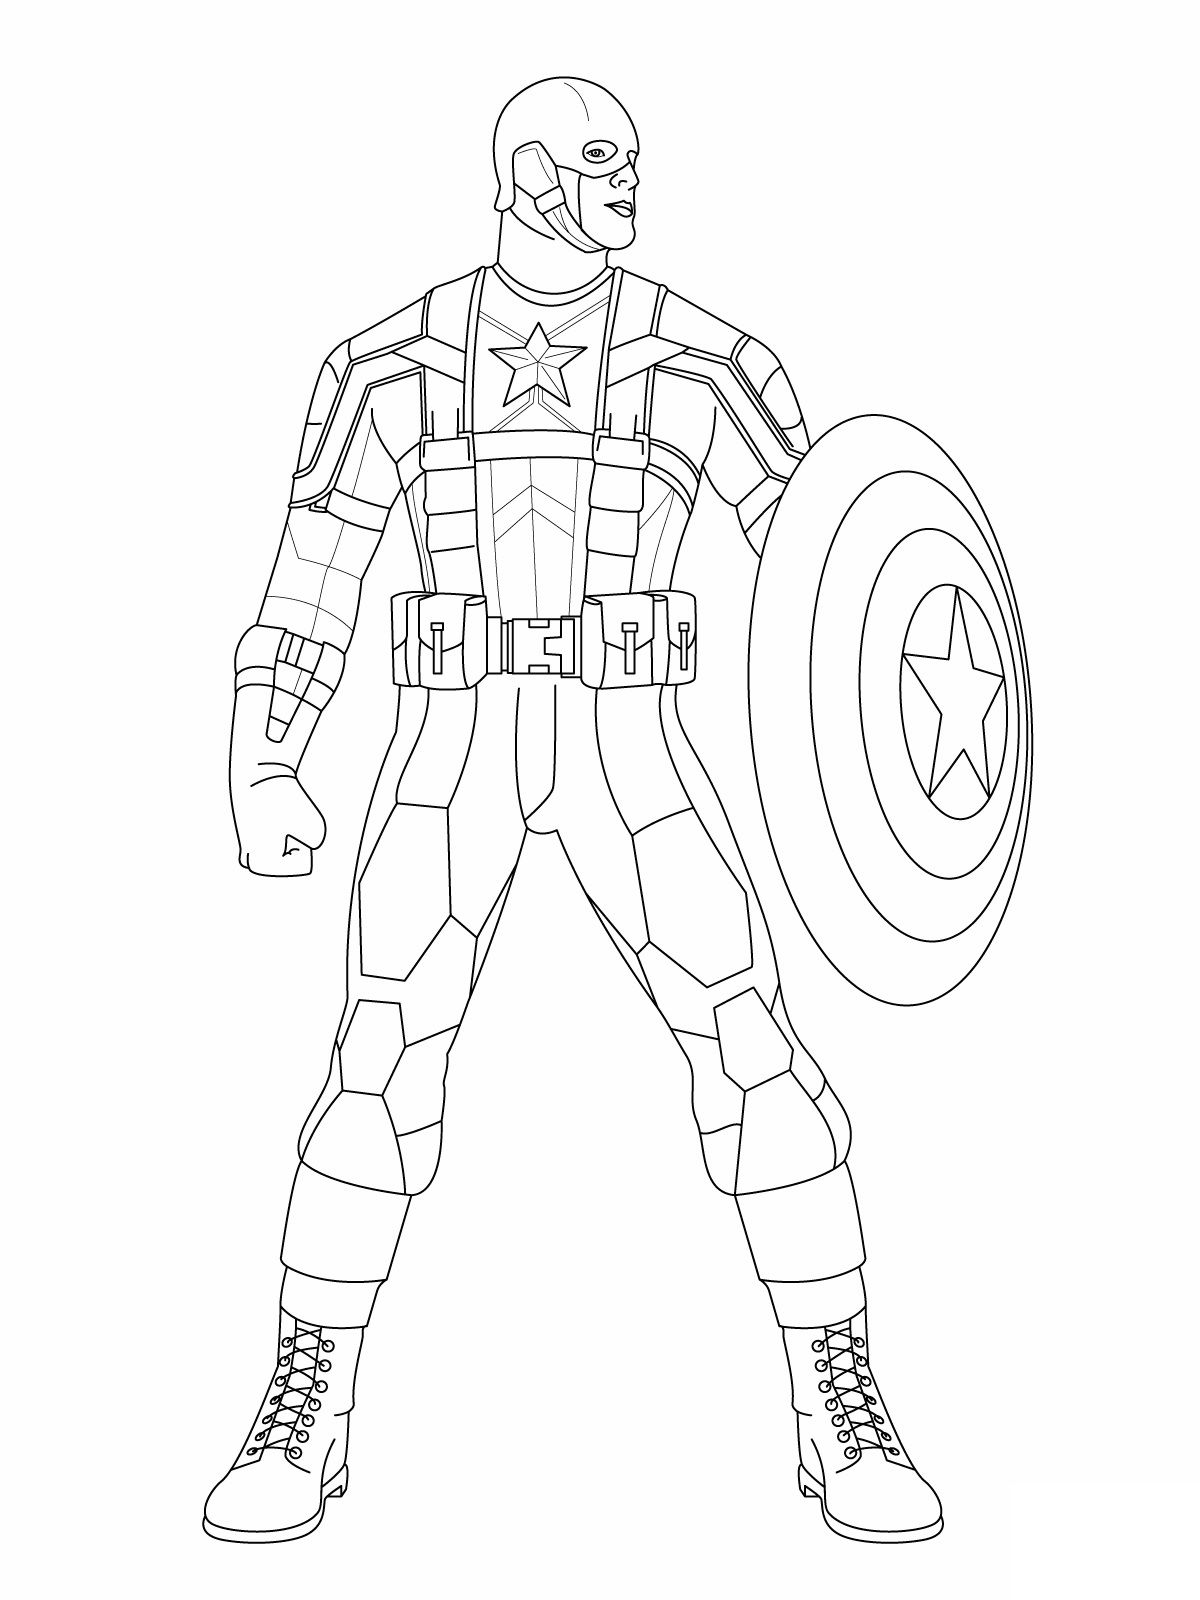 Superhero Coloring Pages Captain America #33 - http://coloringonweb ...